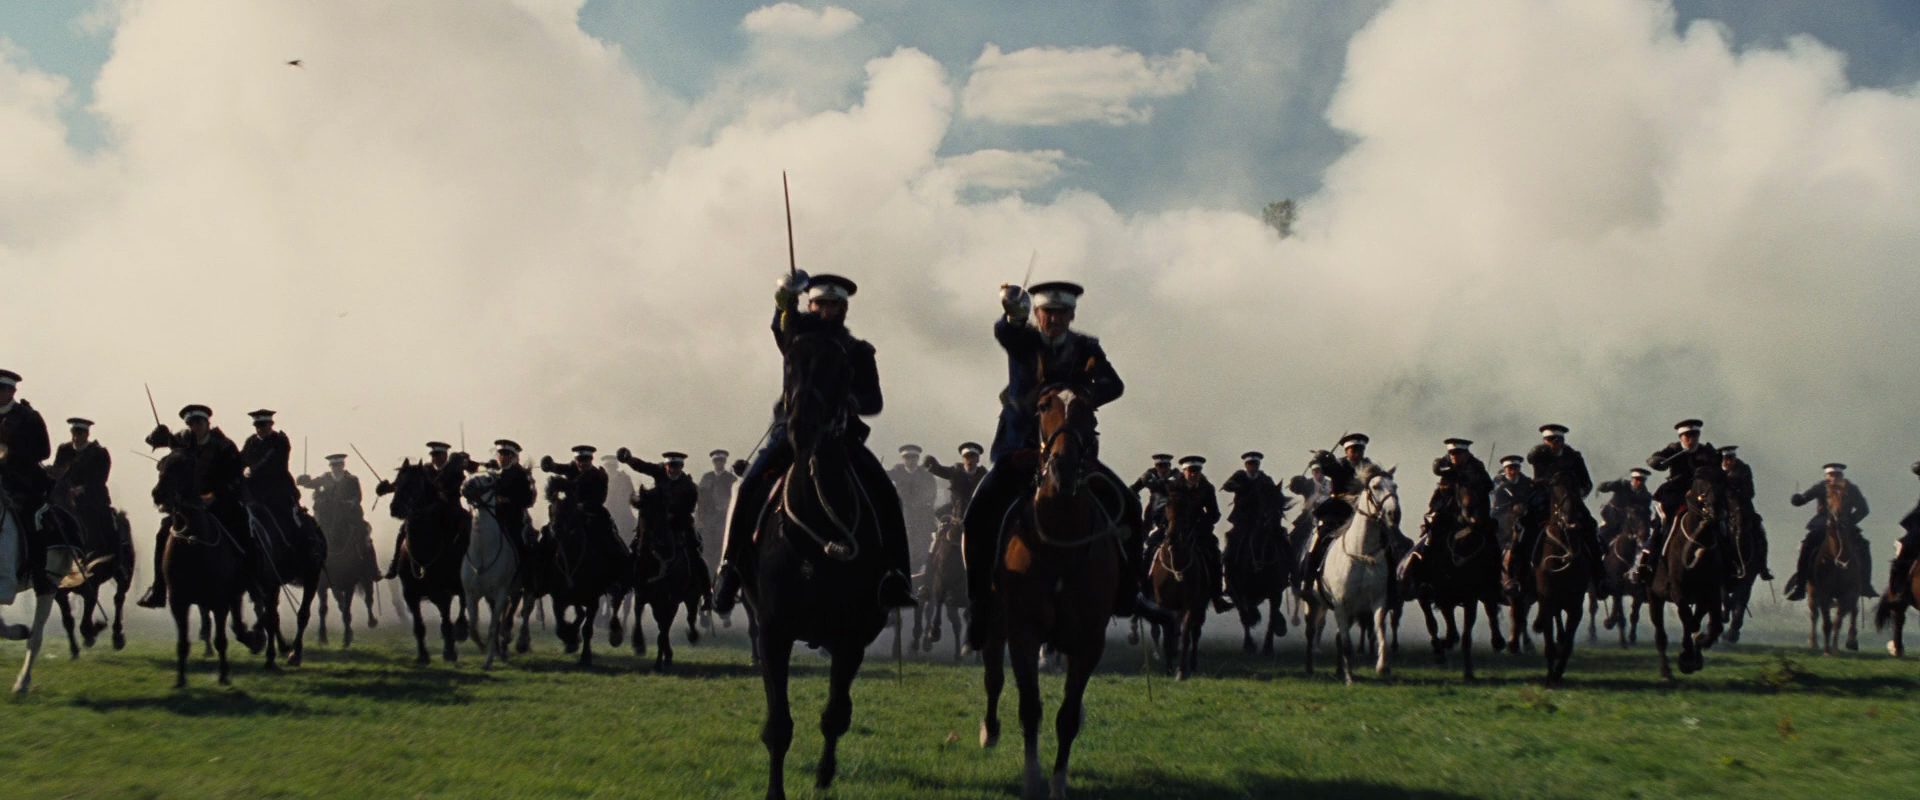 War Horse 2011 30 Days Of Spielberg I Can T Unsee That Movie Film News And Reviews By Jeff Huston